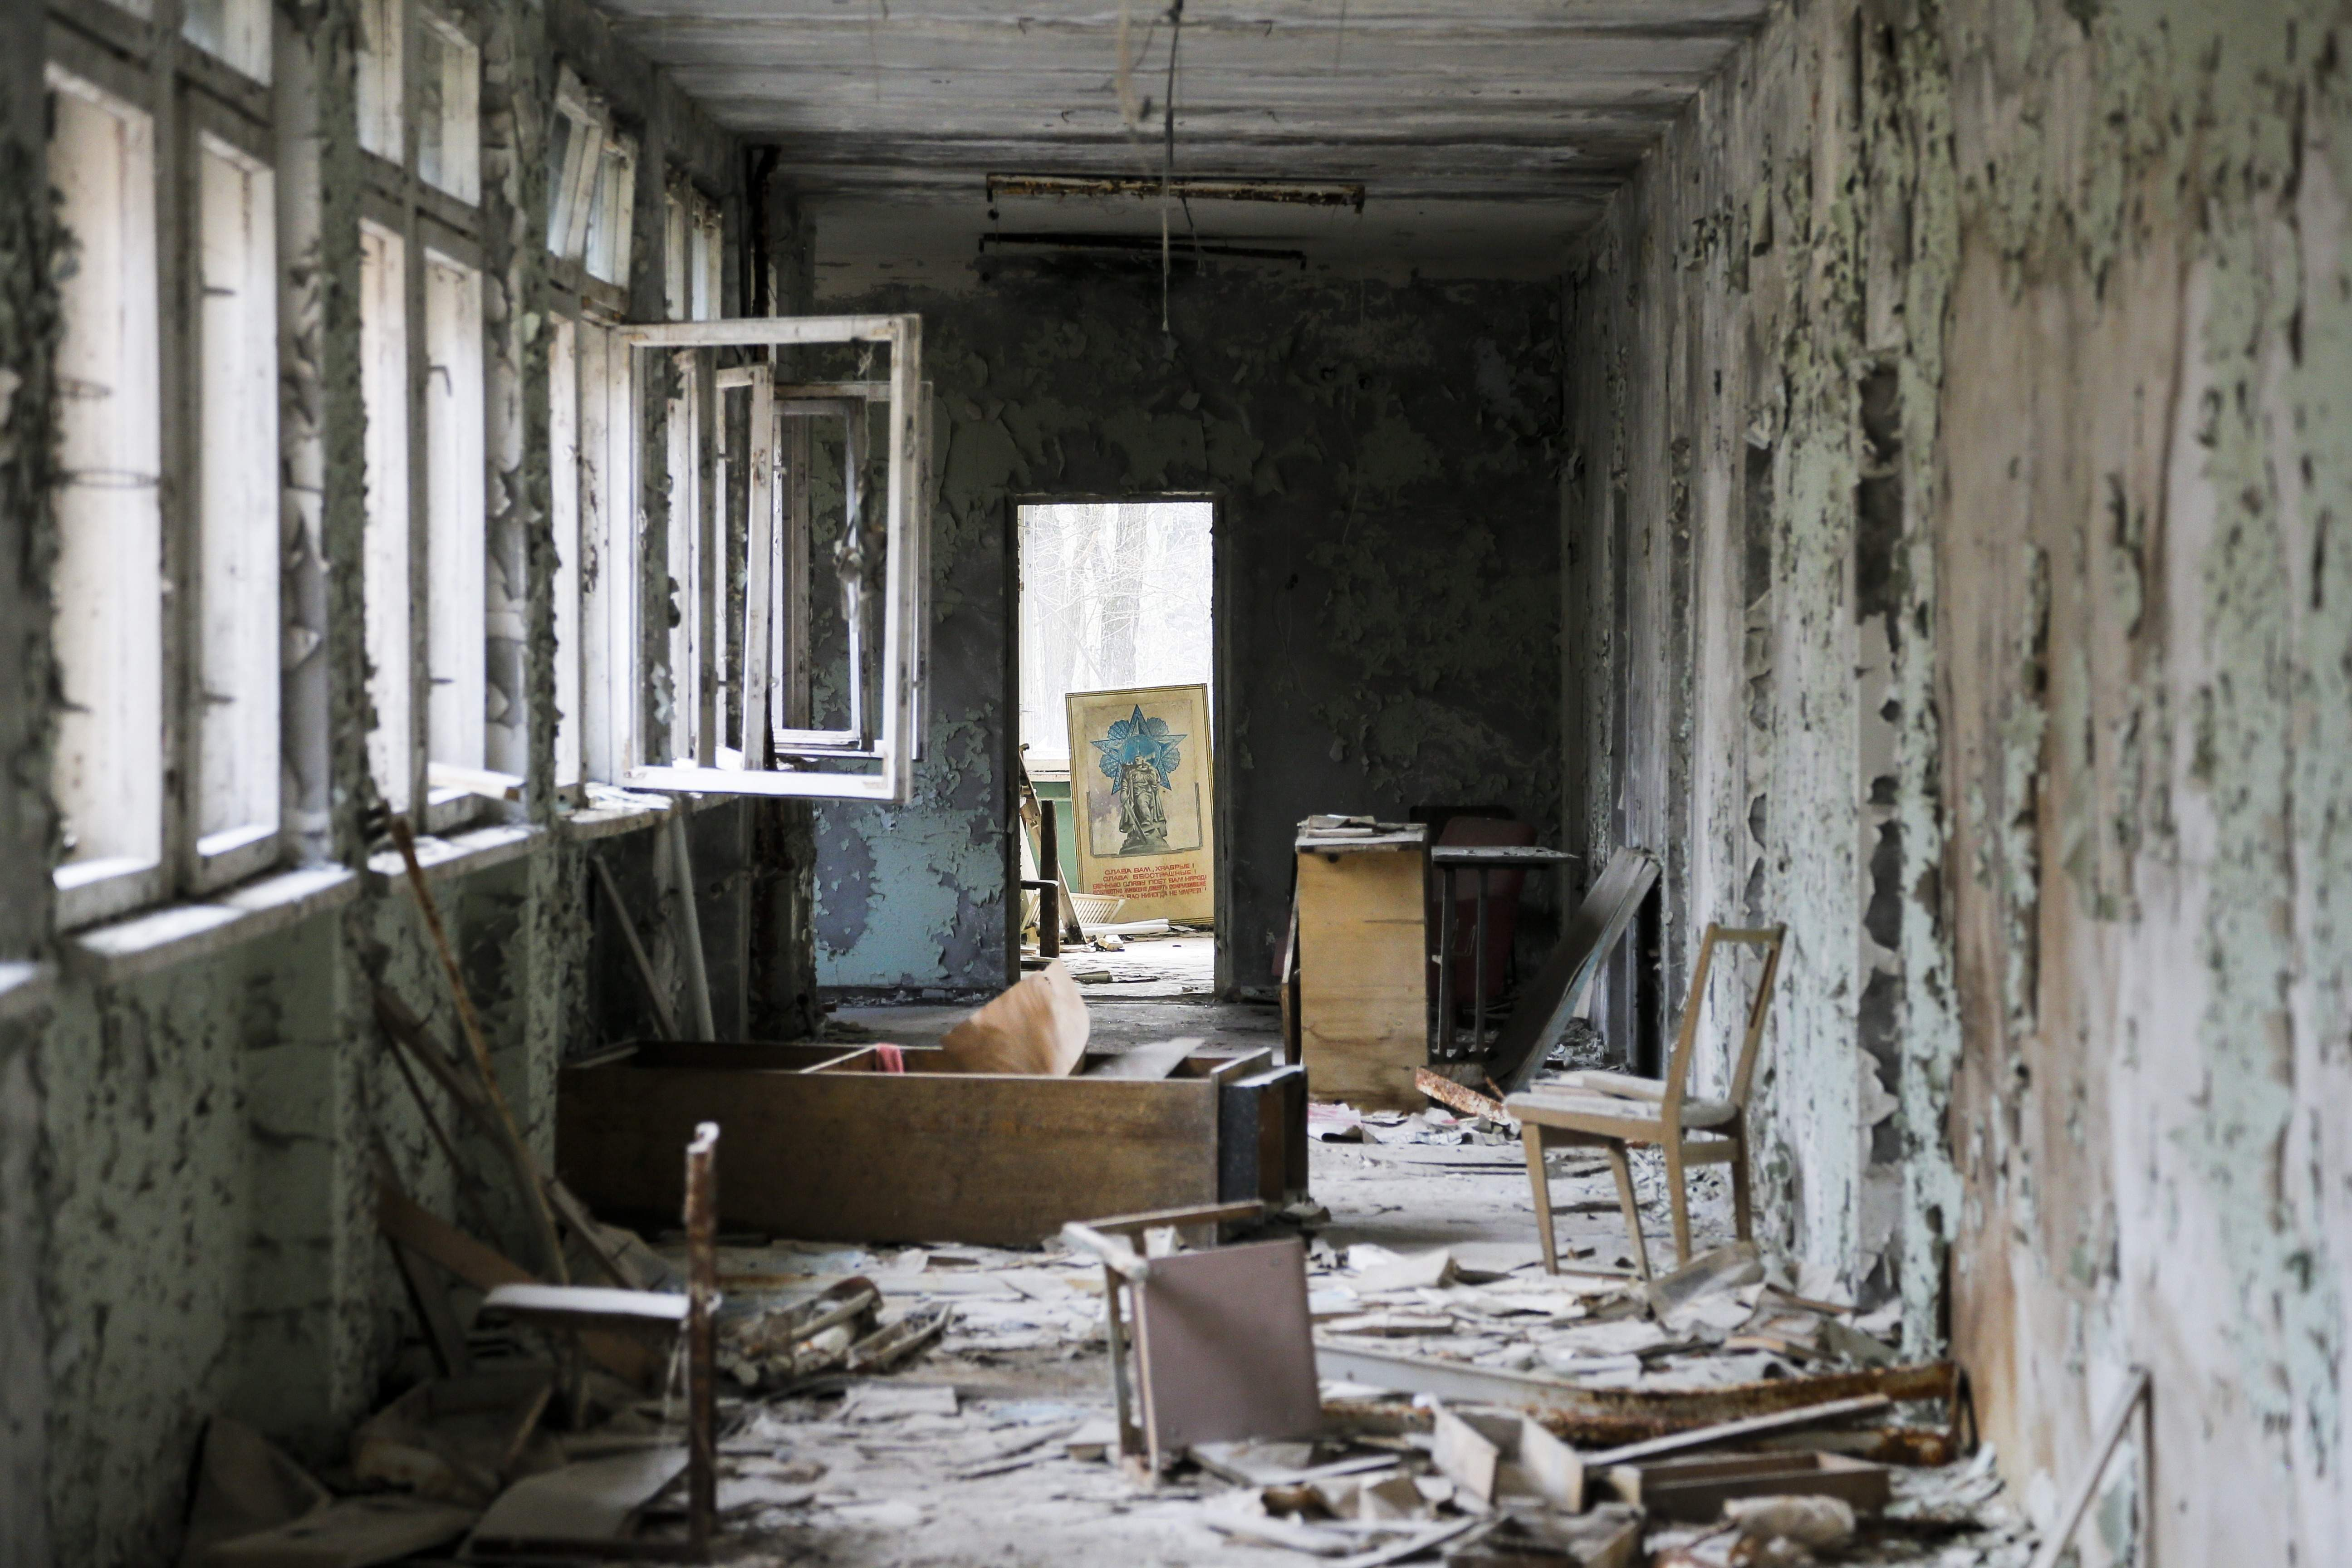 This photo taken Wednesday, April 5, 2017, shows a room in a dilapidated building, part of a school in the deserted town of Pripyat, some 3 kilometers (1.86 miles) from the Chernobyl nuclear power plant Ukraine. Once home to some 50,000 people whose lives were connected to the Chernobyl nuclear power plant, Pripyat was hastily evacuated one day after a reactor at the plant 3 kilometers (2 miles away) exploded on April 26, 1986. The explosion and the subsequent fire spewed a radioactive plume over much of northern Europe. THE ASSOCIATED PRESS